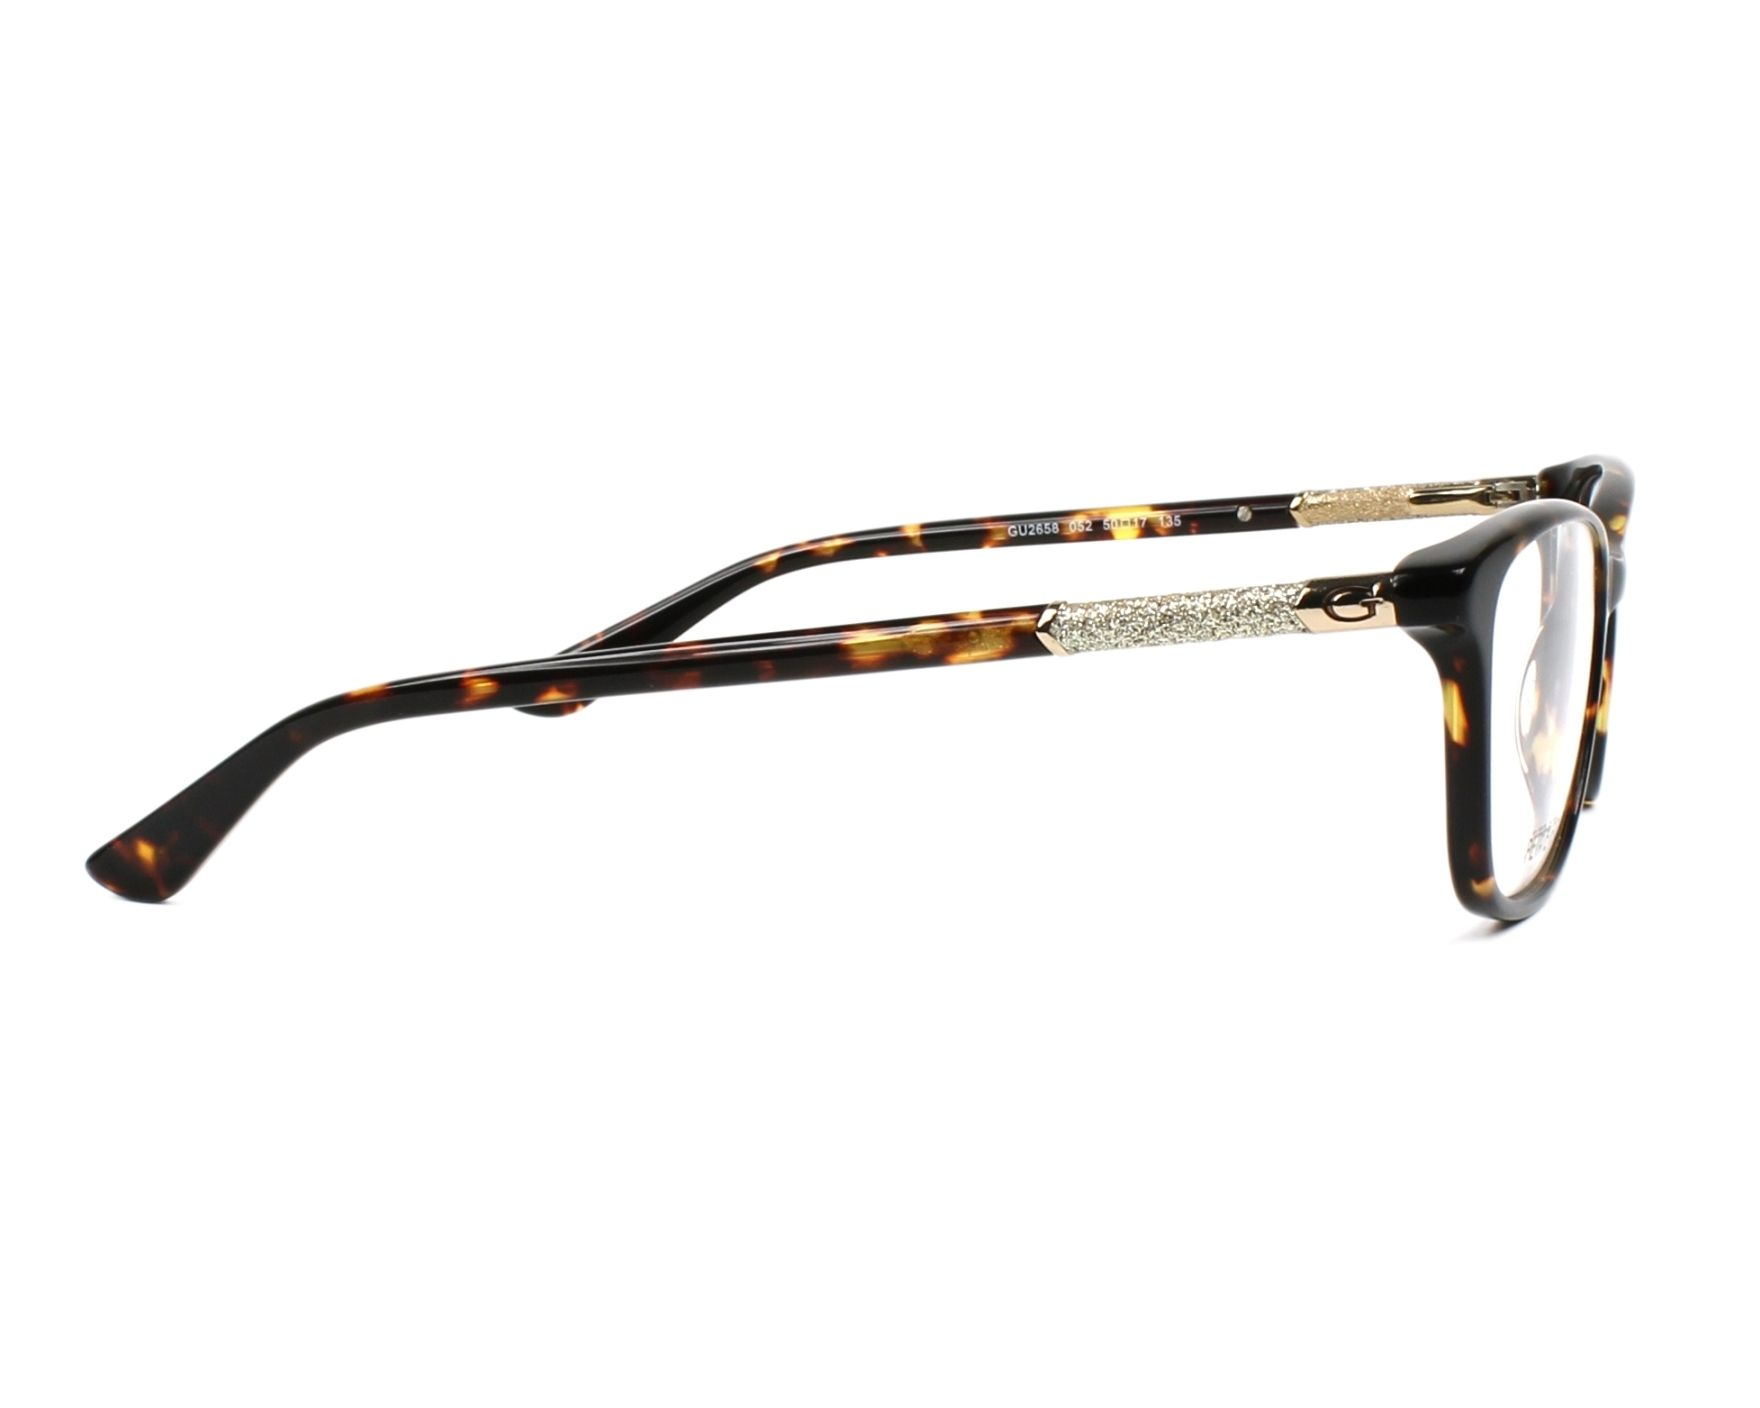 6f222243745aa Lunettes De Vue Guess 17 - Auto Electrical Wiring Diagram